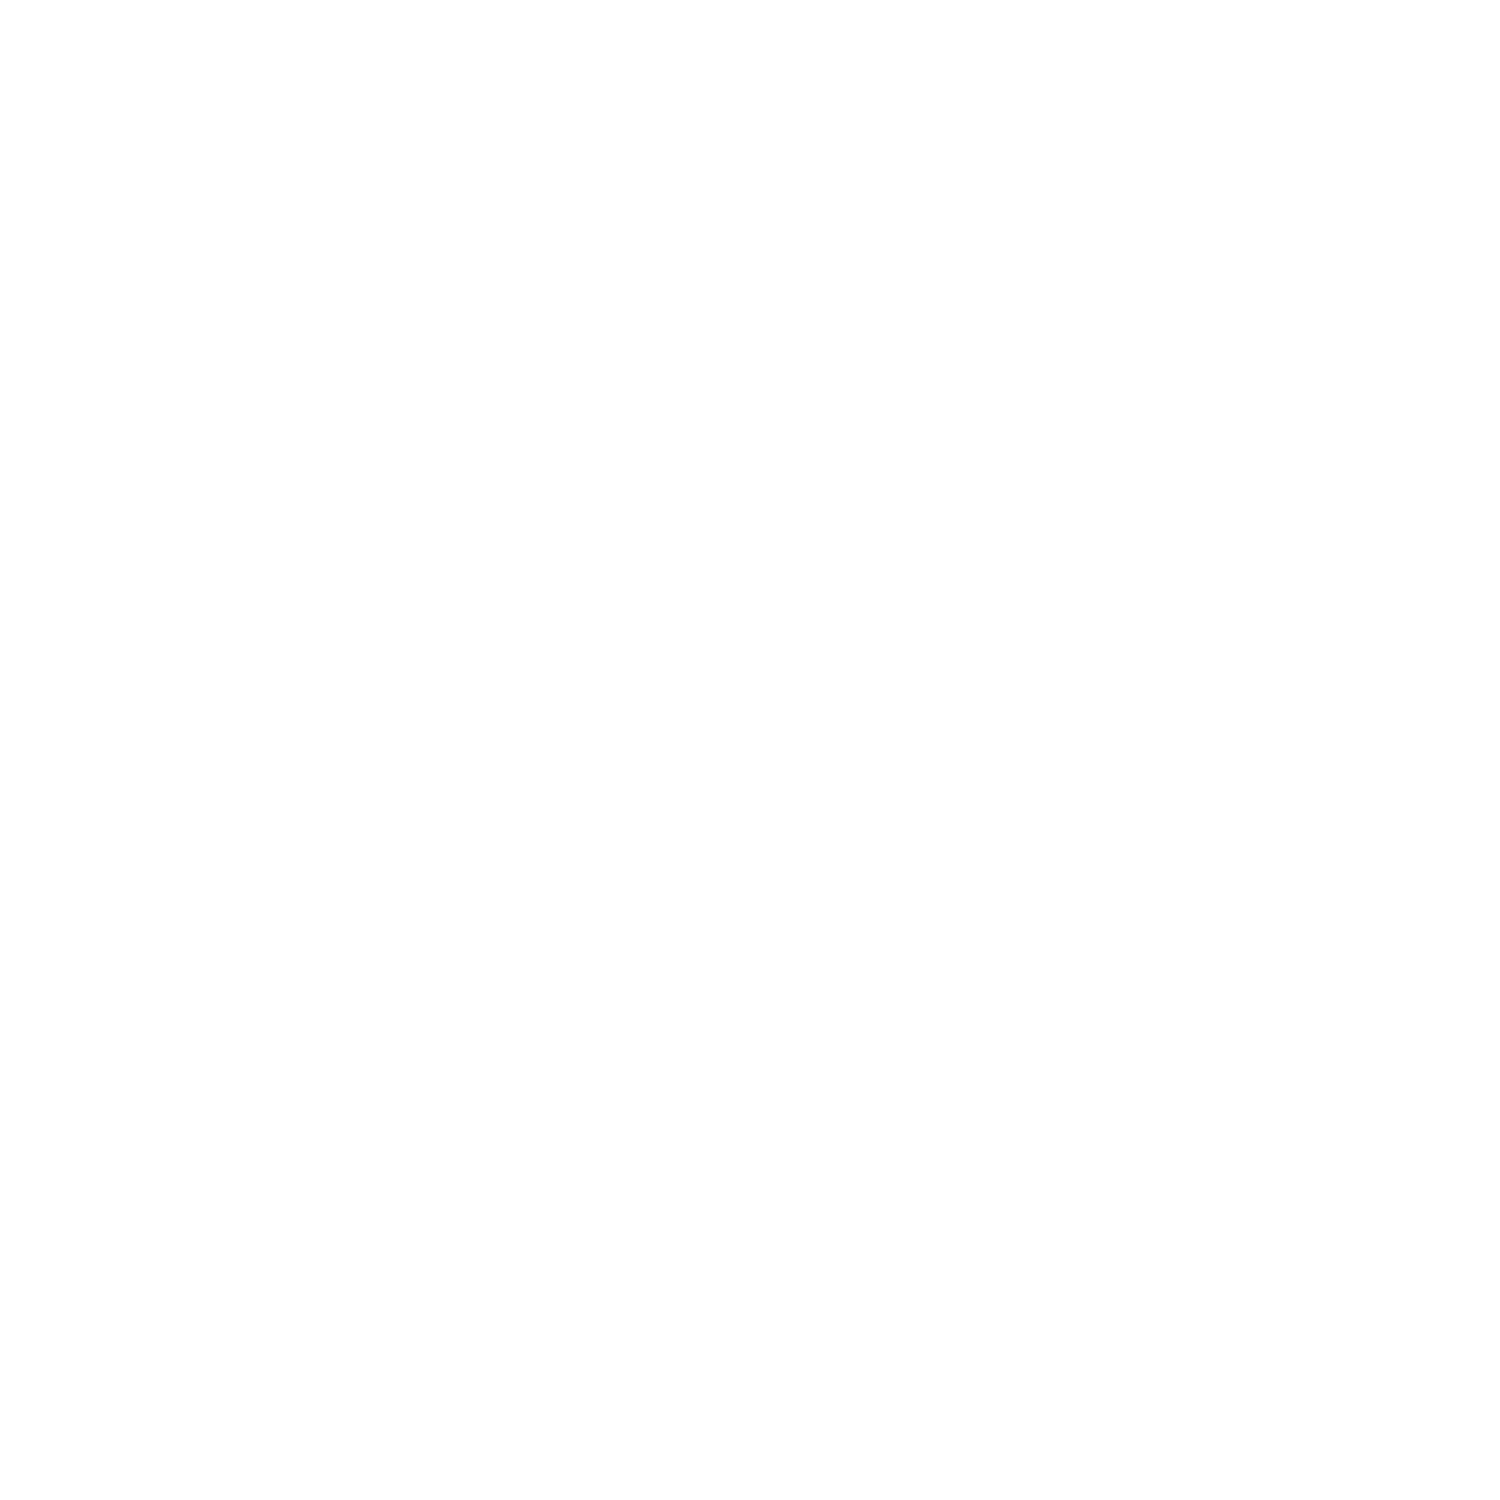 Pet Supplies Superstore